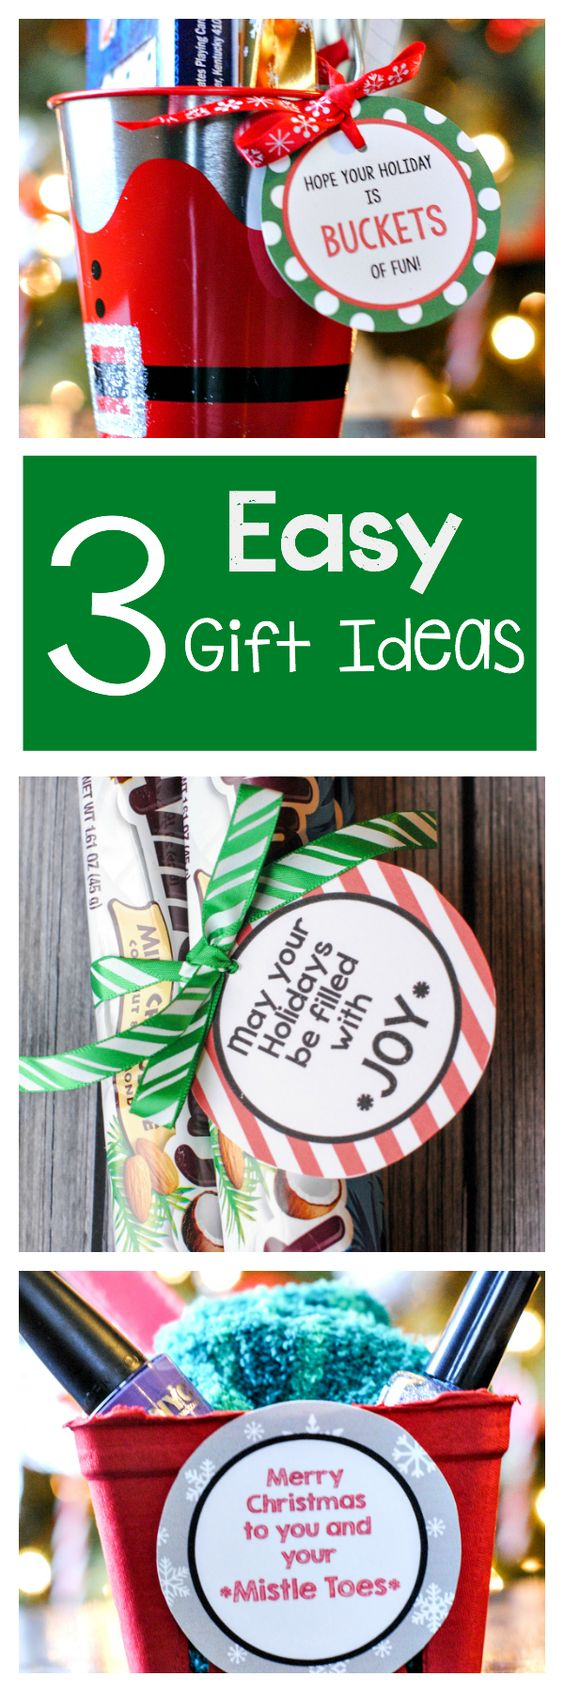 the best christmas printables gift tags holiday greeting make sure you go and these printables now by clicking on the link below each image these talented bloggers could decide to start charging for